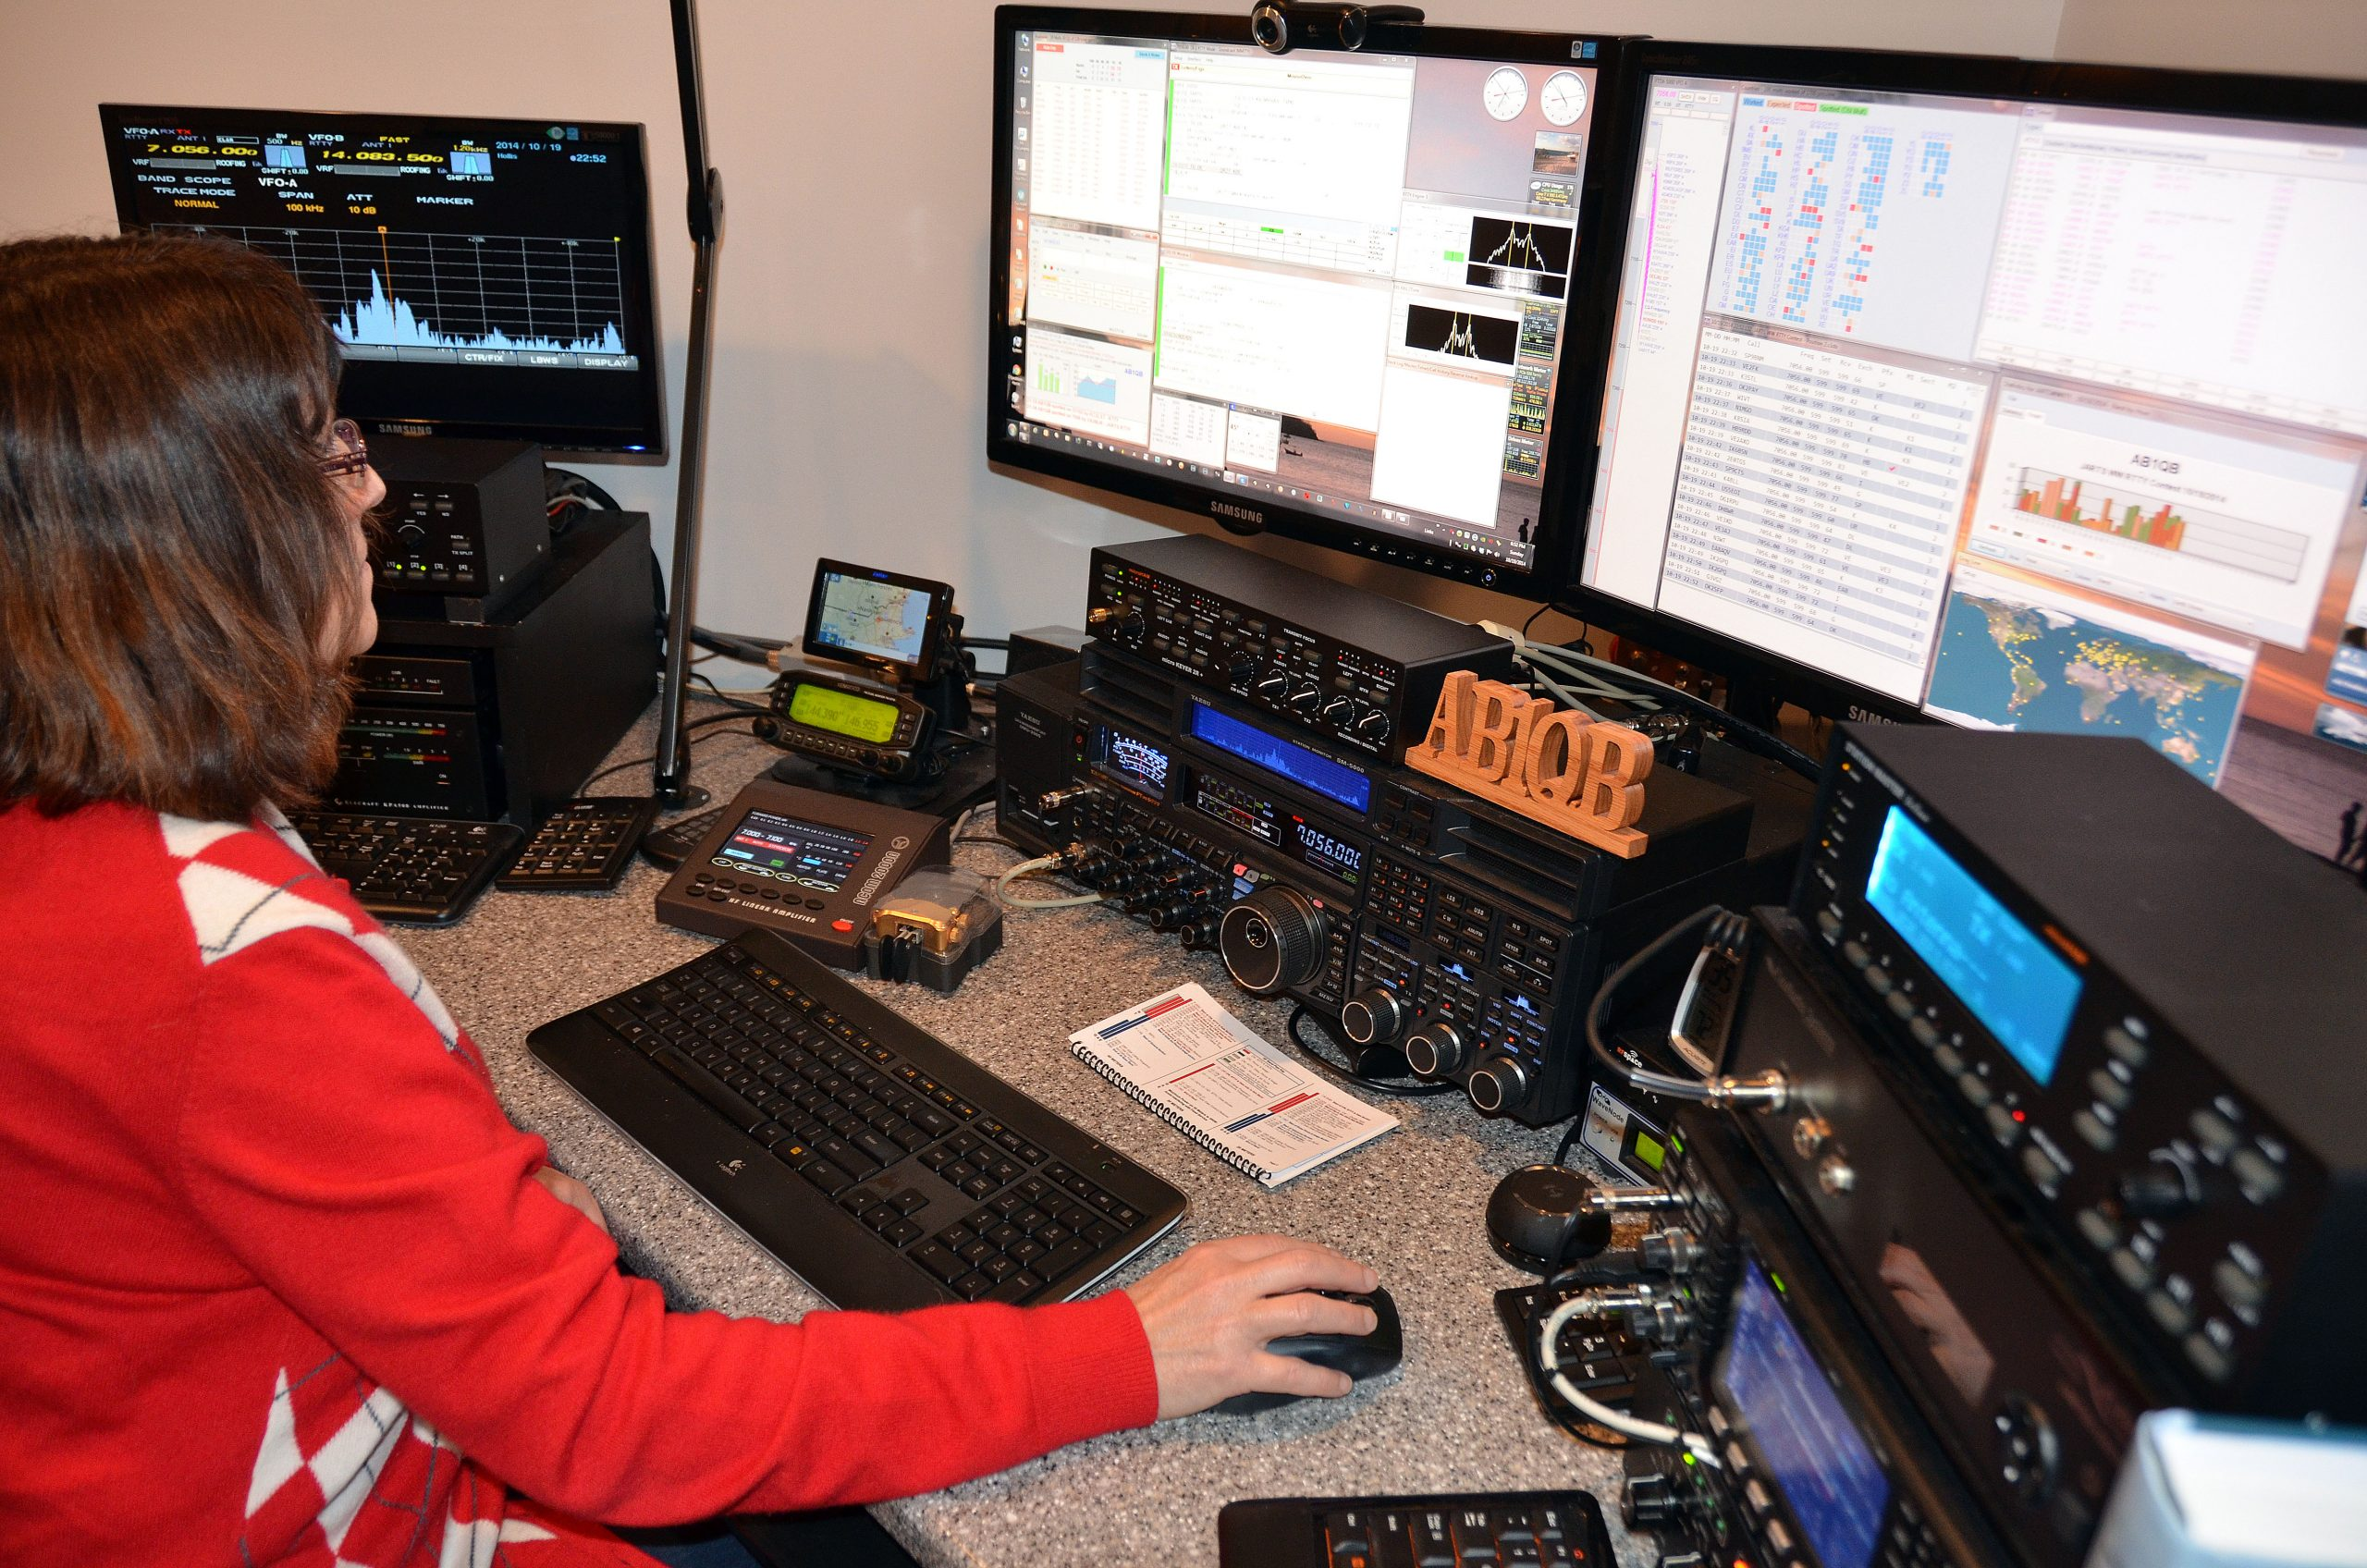 Ab1qb Enters The 2014 Jarts Rtty Contest Our First Use